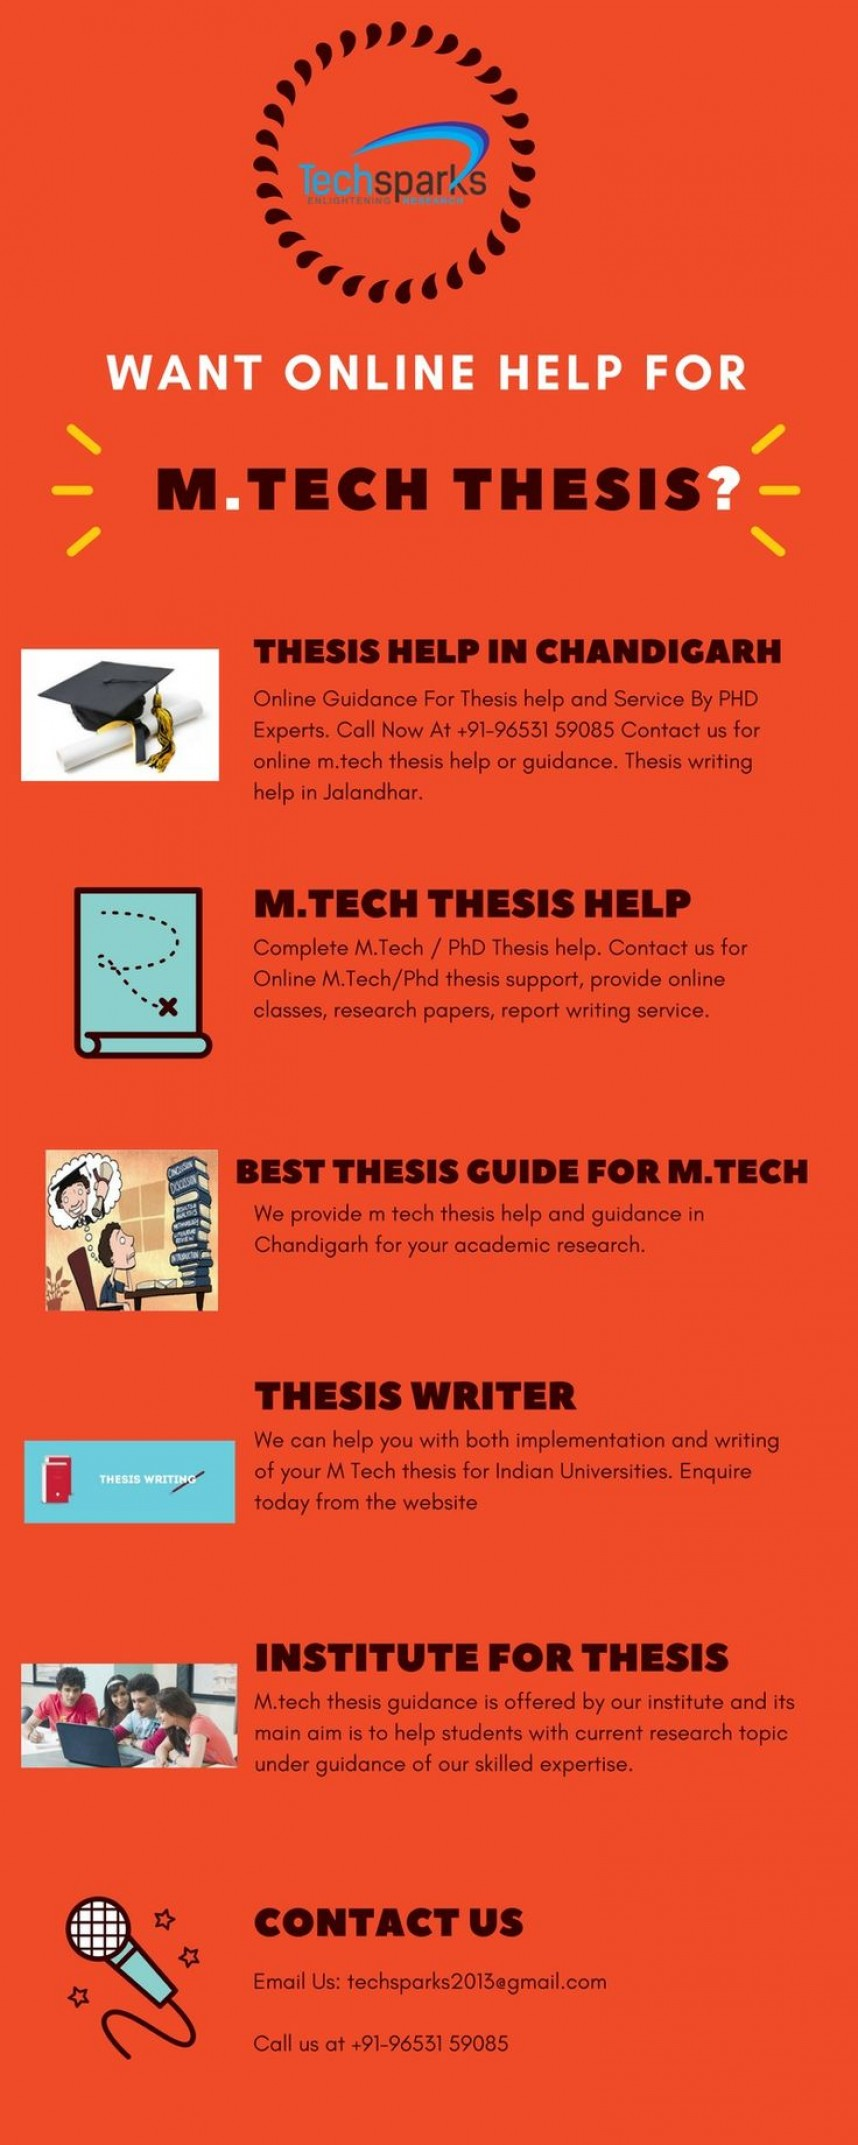 001 Academic Research Paper Writing Services In India Marvelous Best